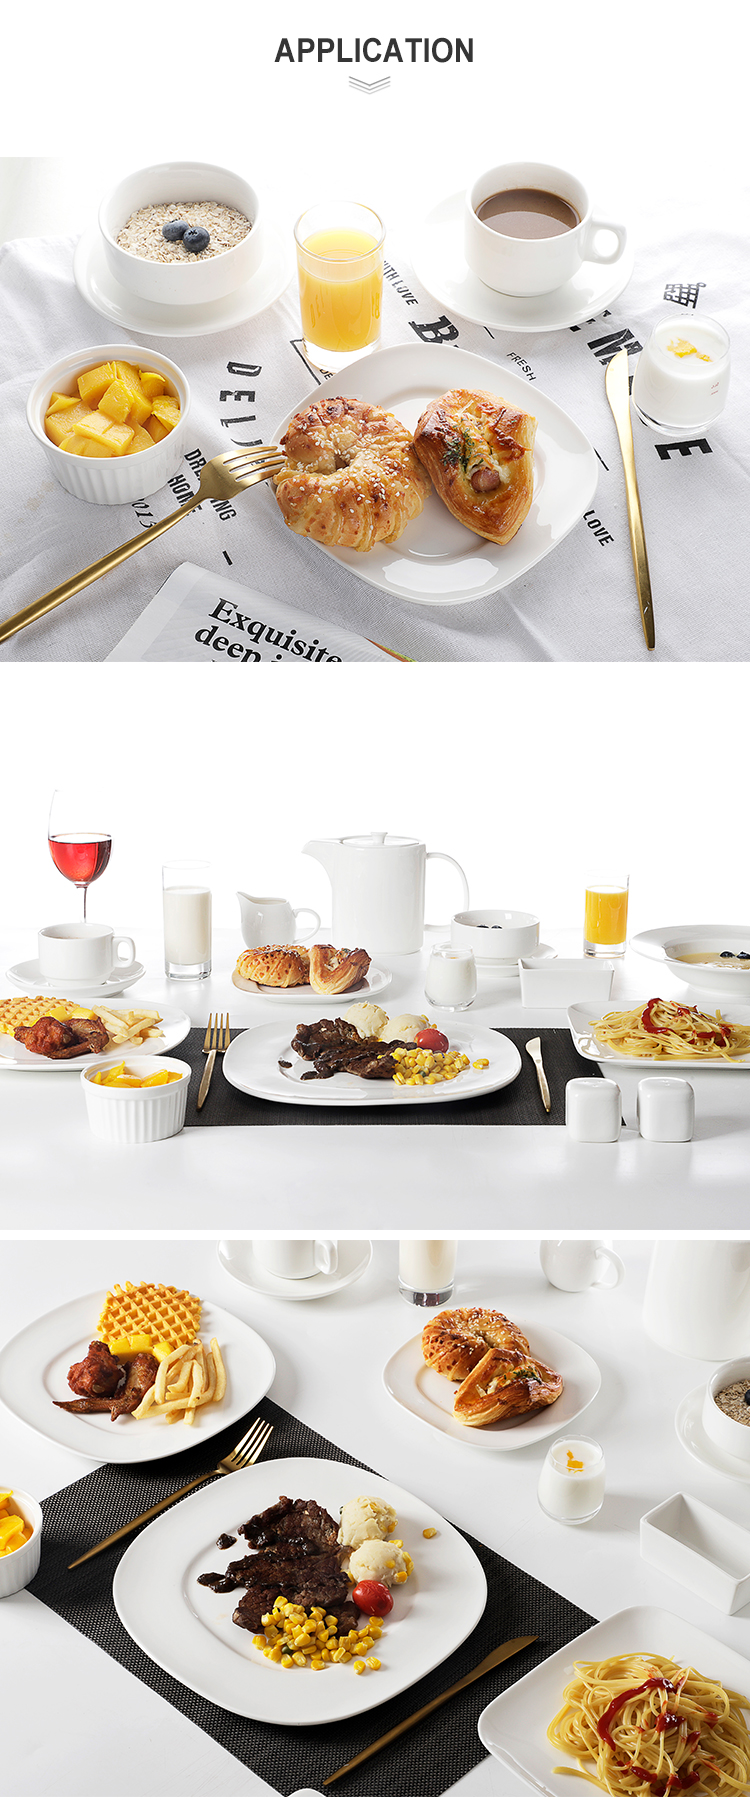 product-Hotel Restaurant Nordic Ceramic Plates Tableware,Square Dinnerware Sets,White Porcelain Dinn-1